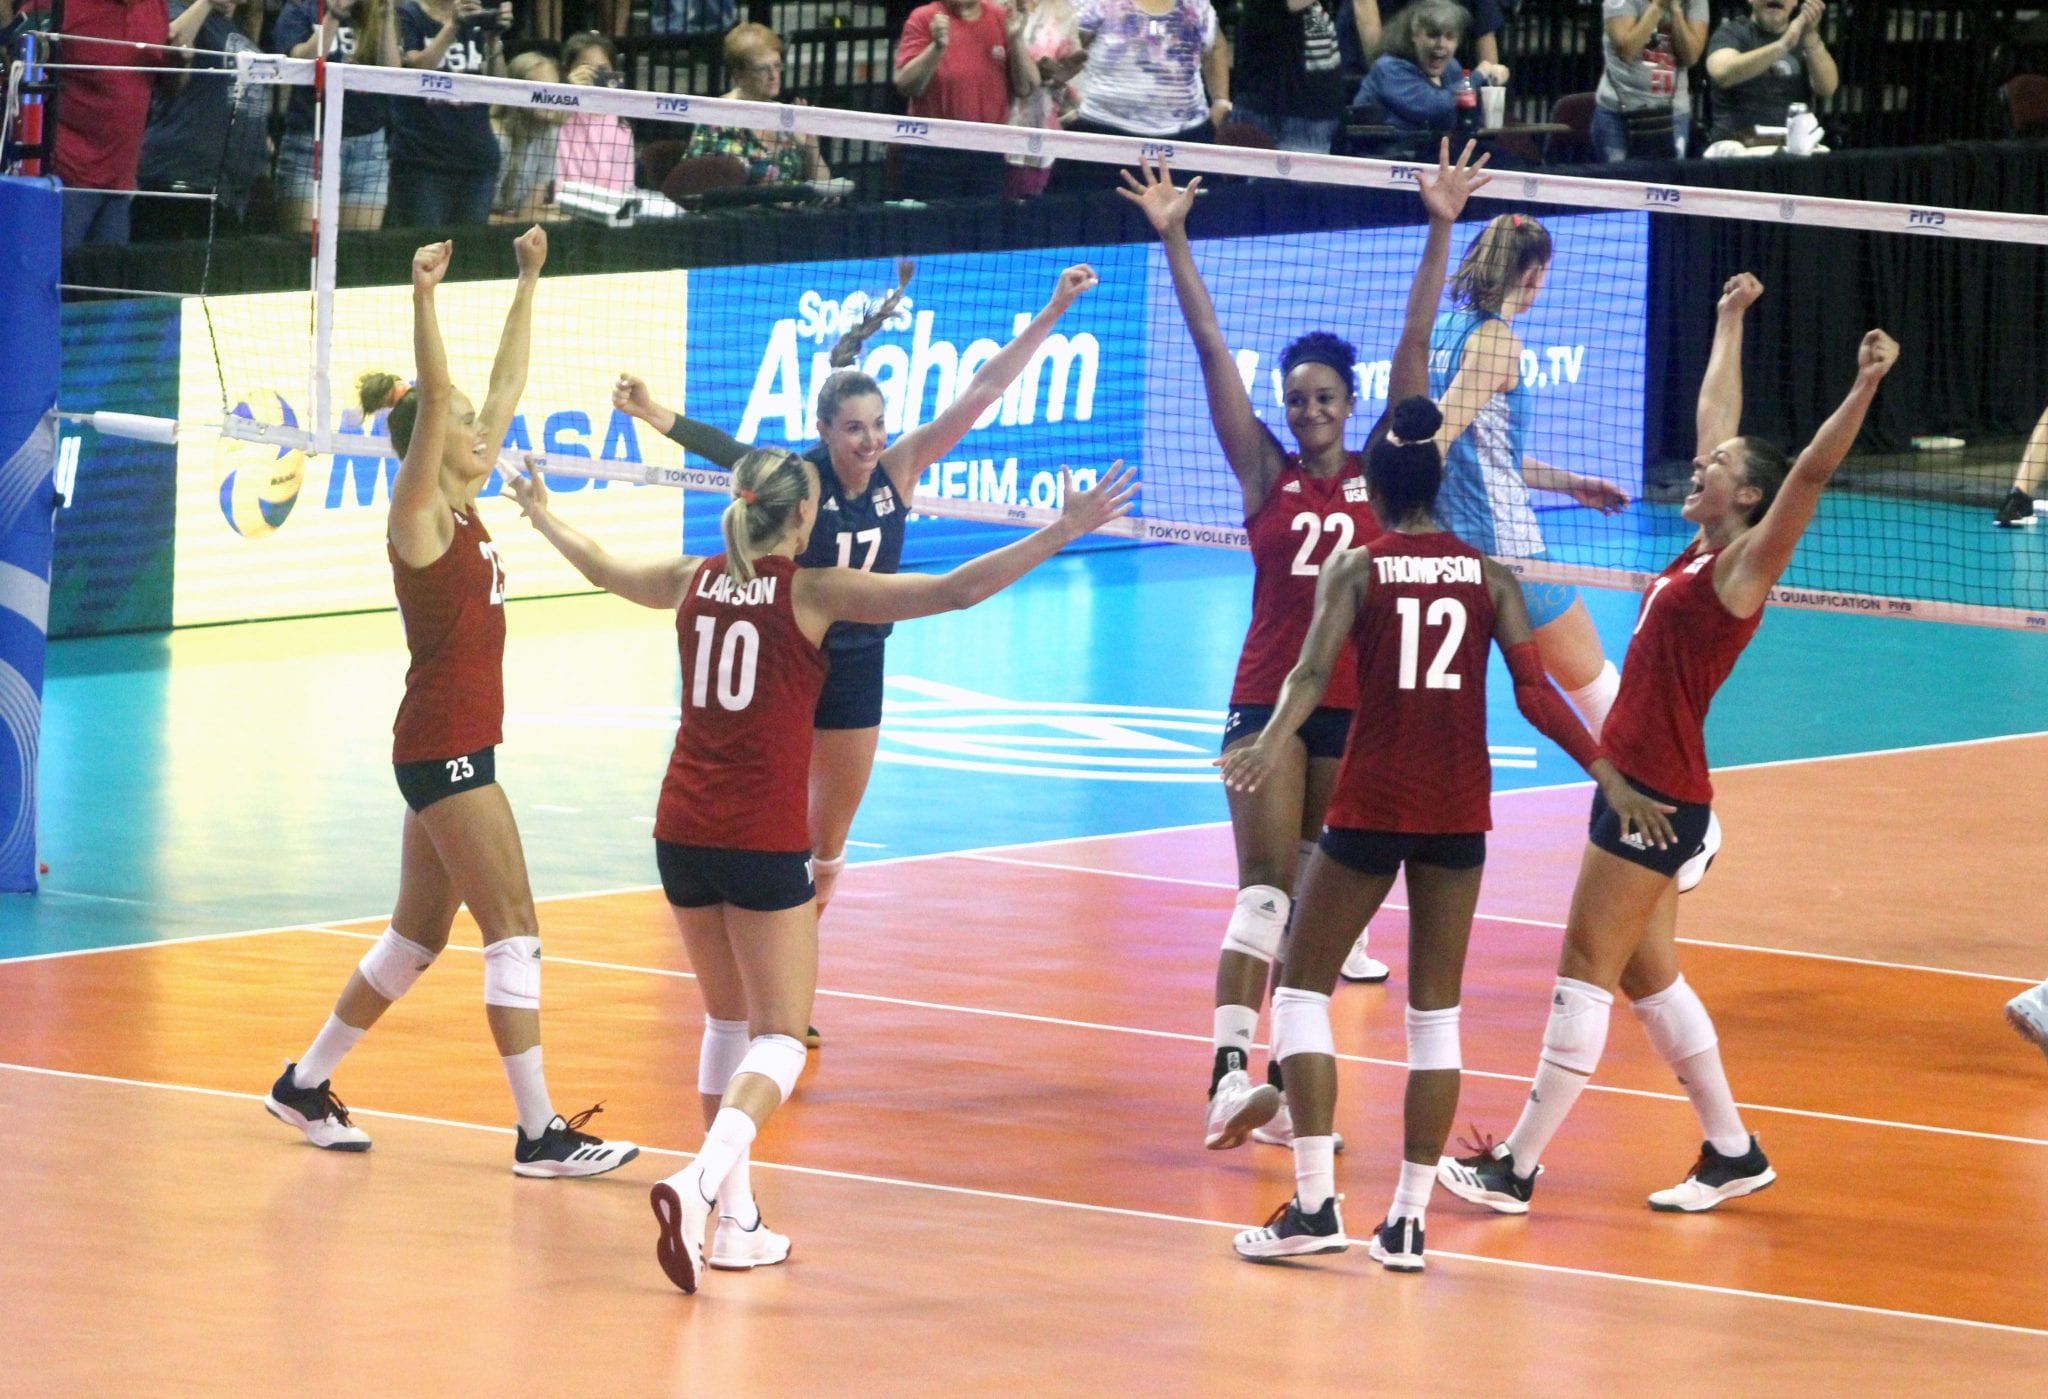 Volleyball Team USA Wins Tournament Qualifies For 2020 Summer